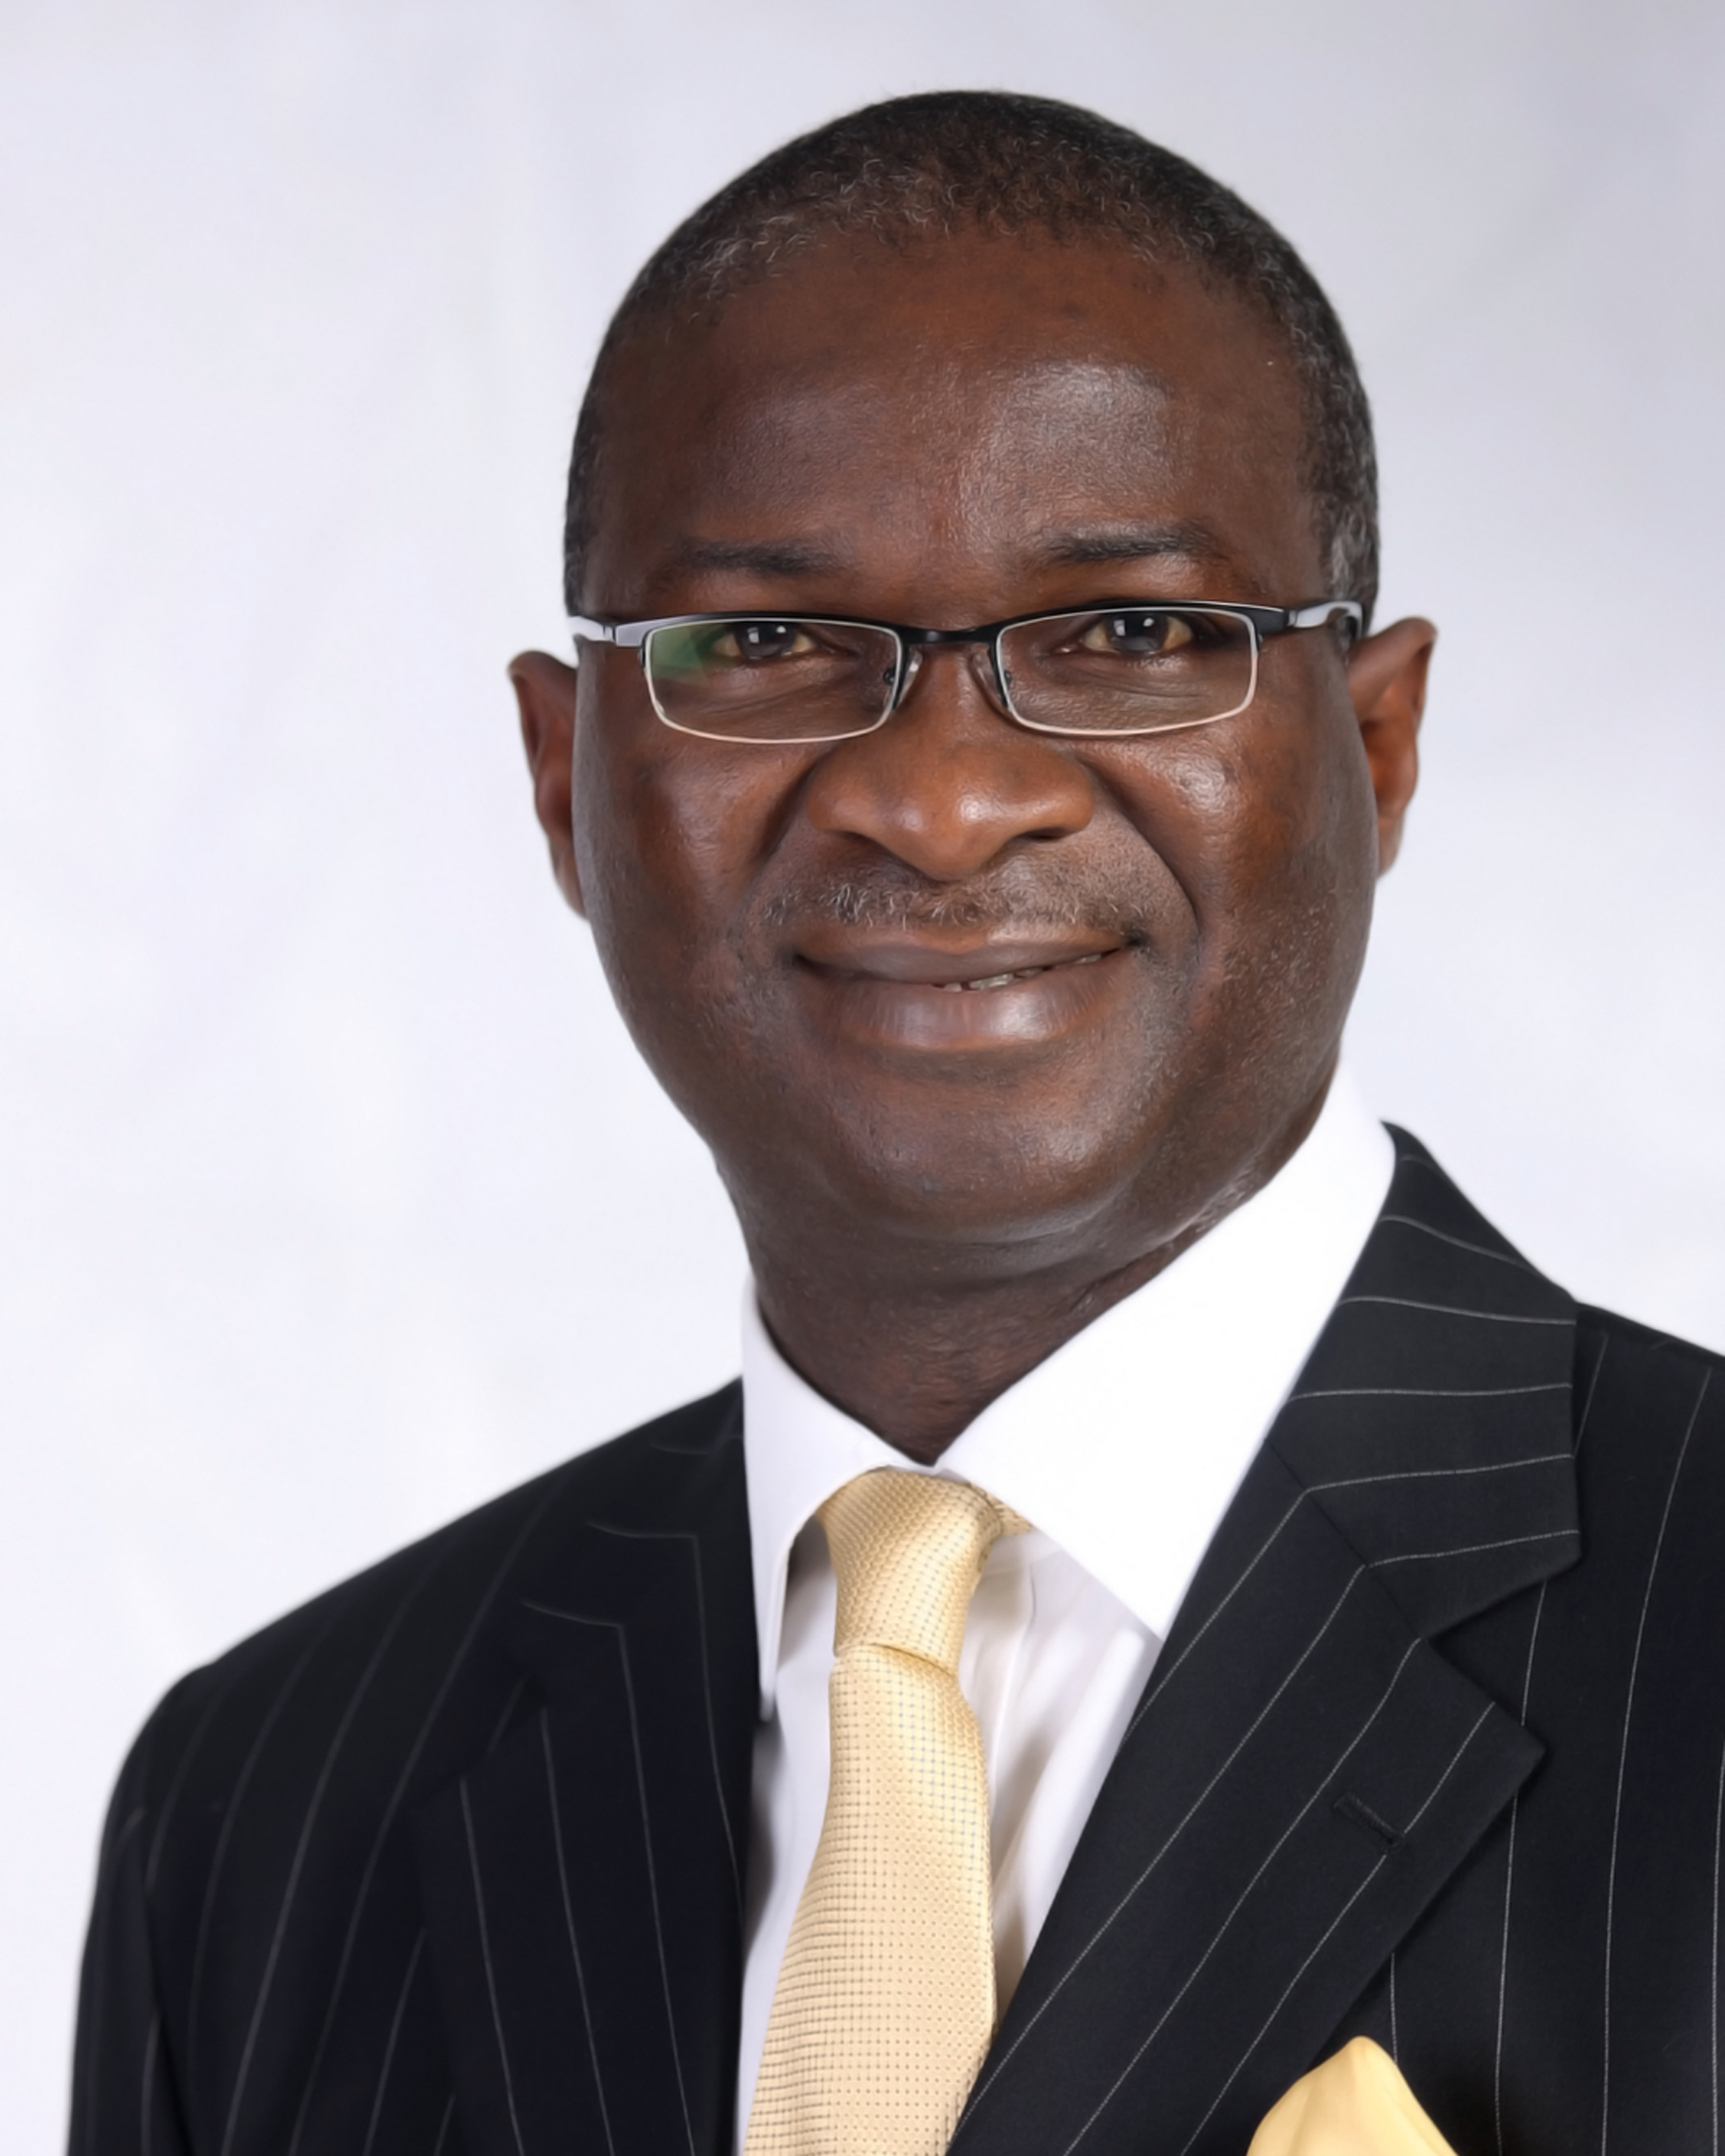 Fashola Charges BRT Operators On Commuters' Feelings